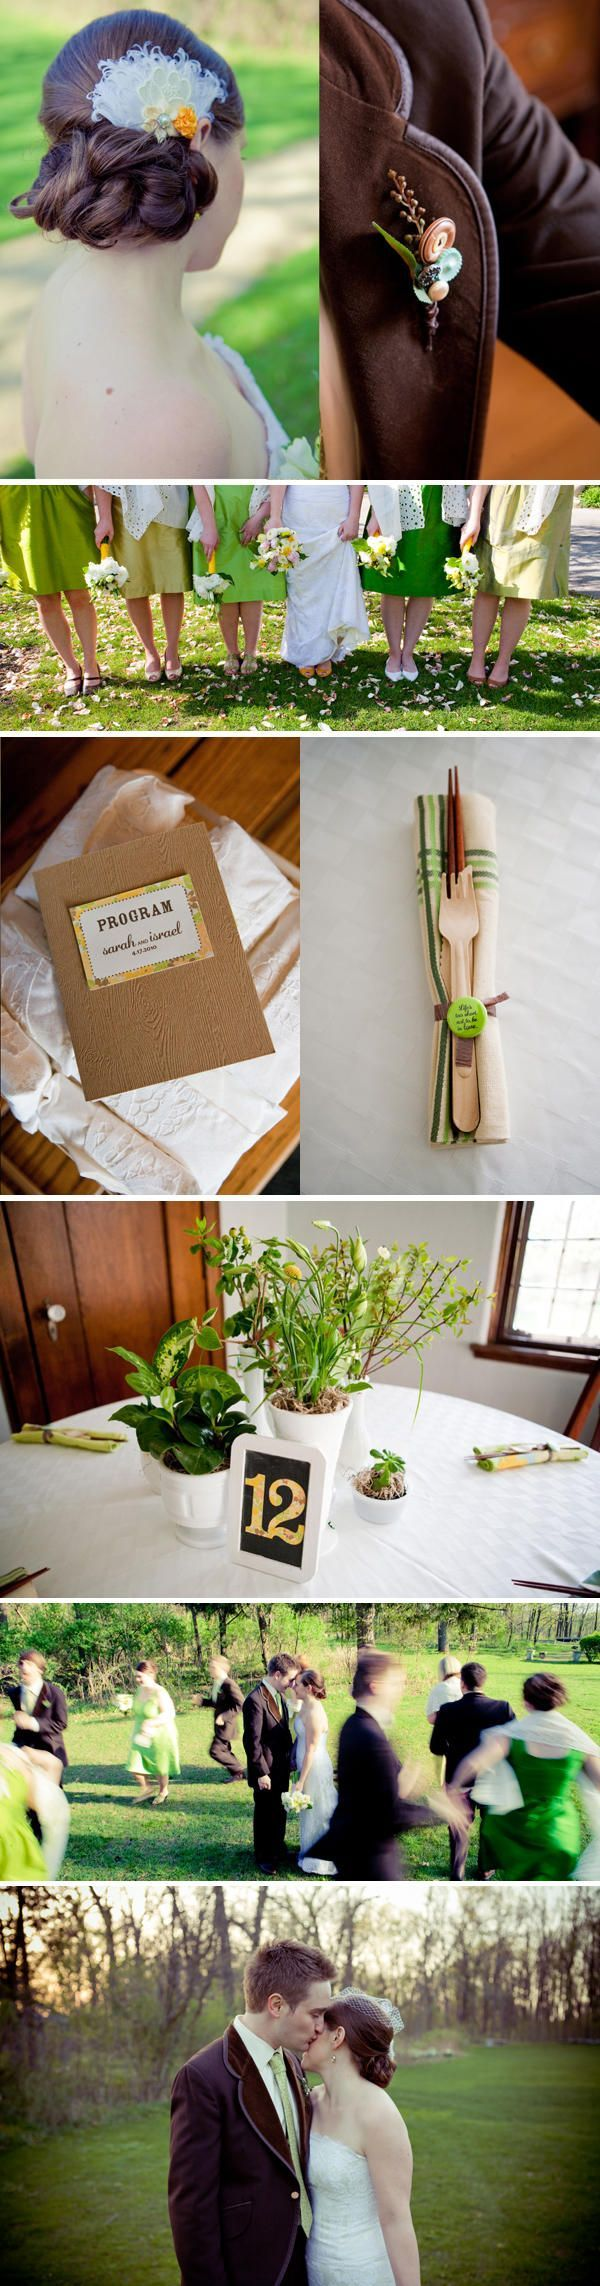 Diy Chicacgo Backyard Wedding